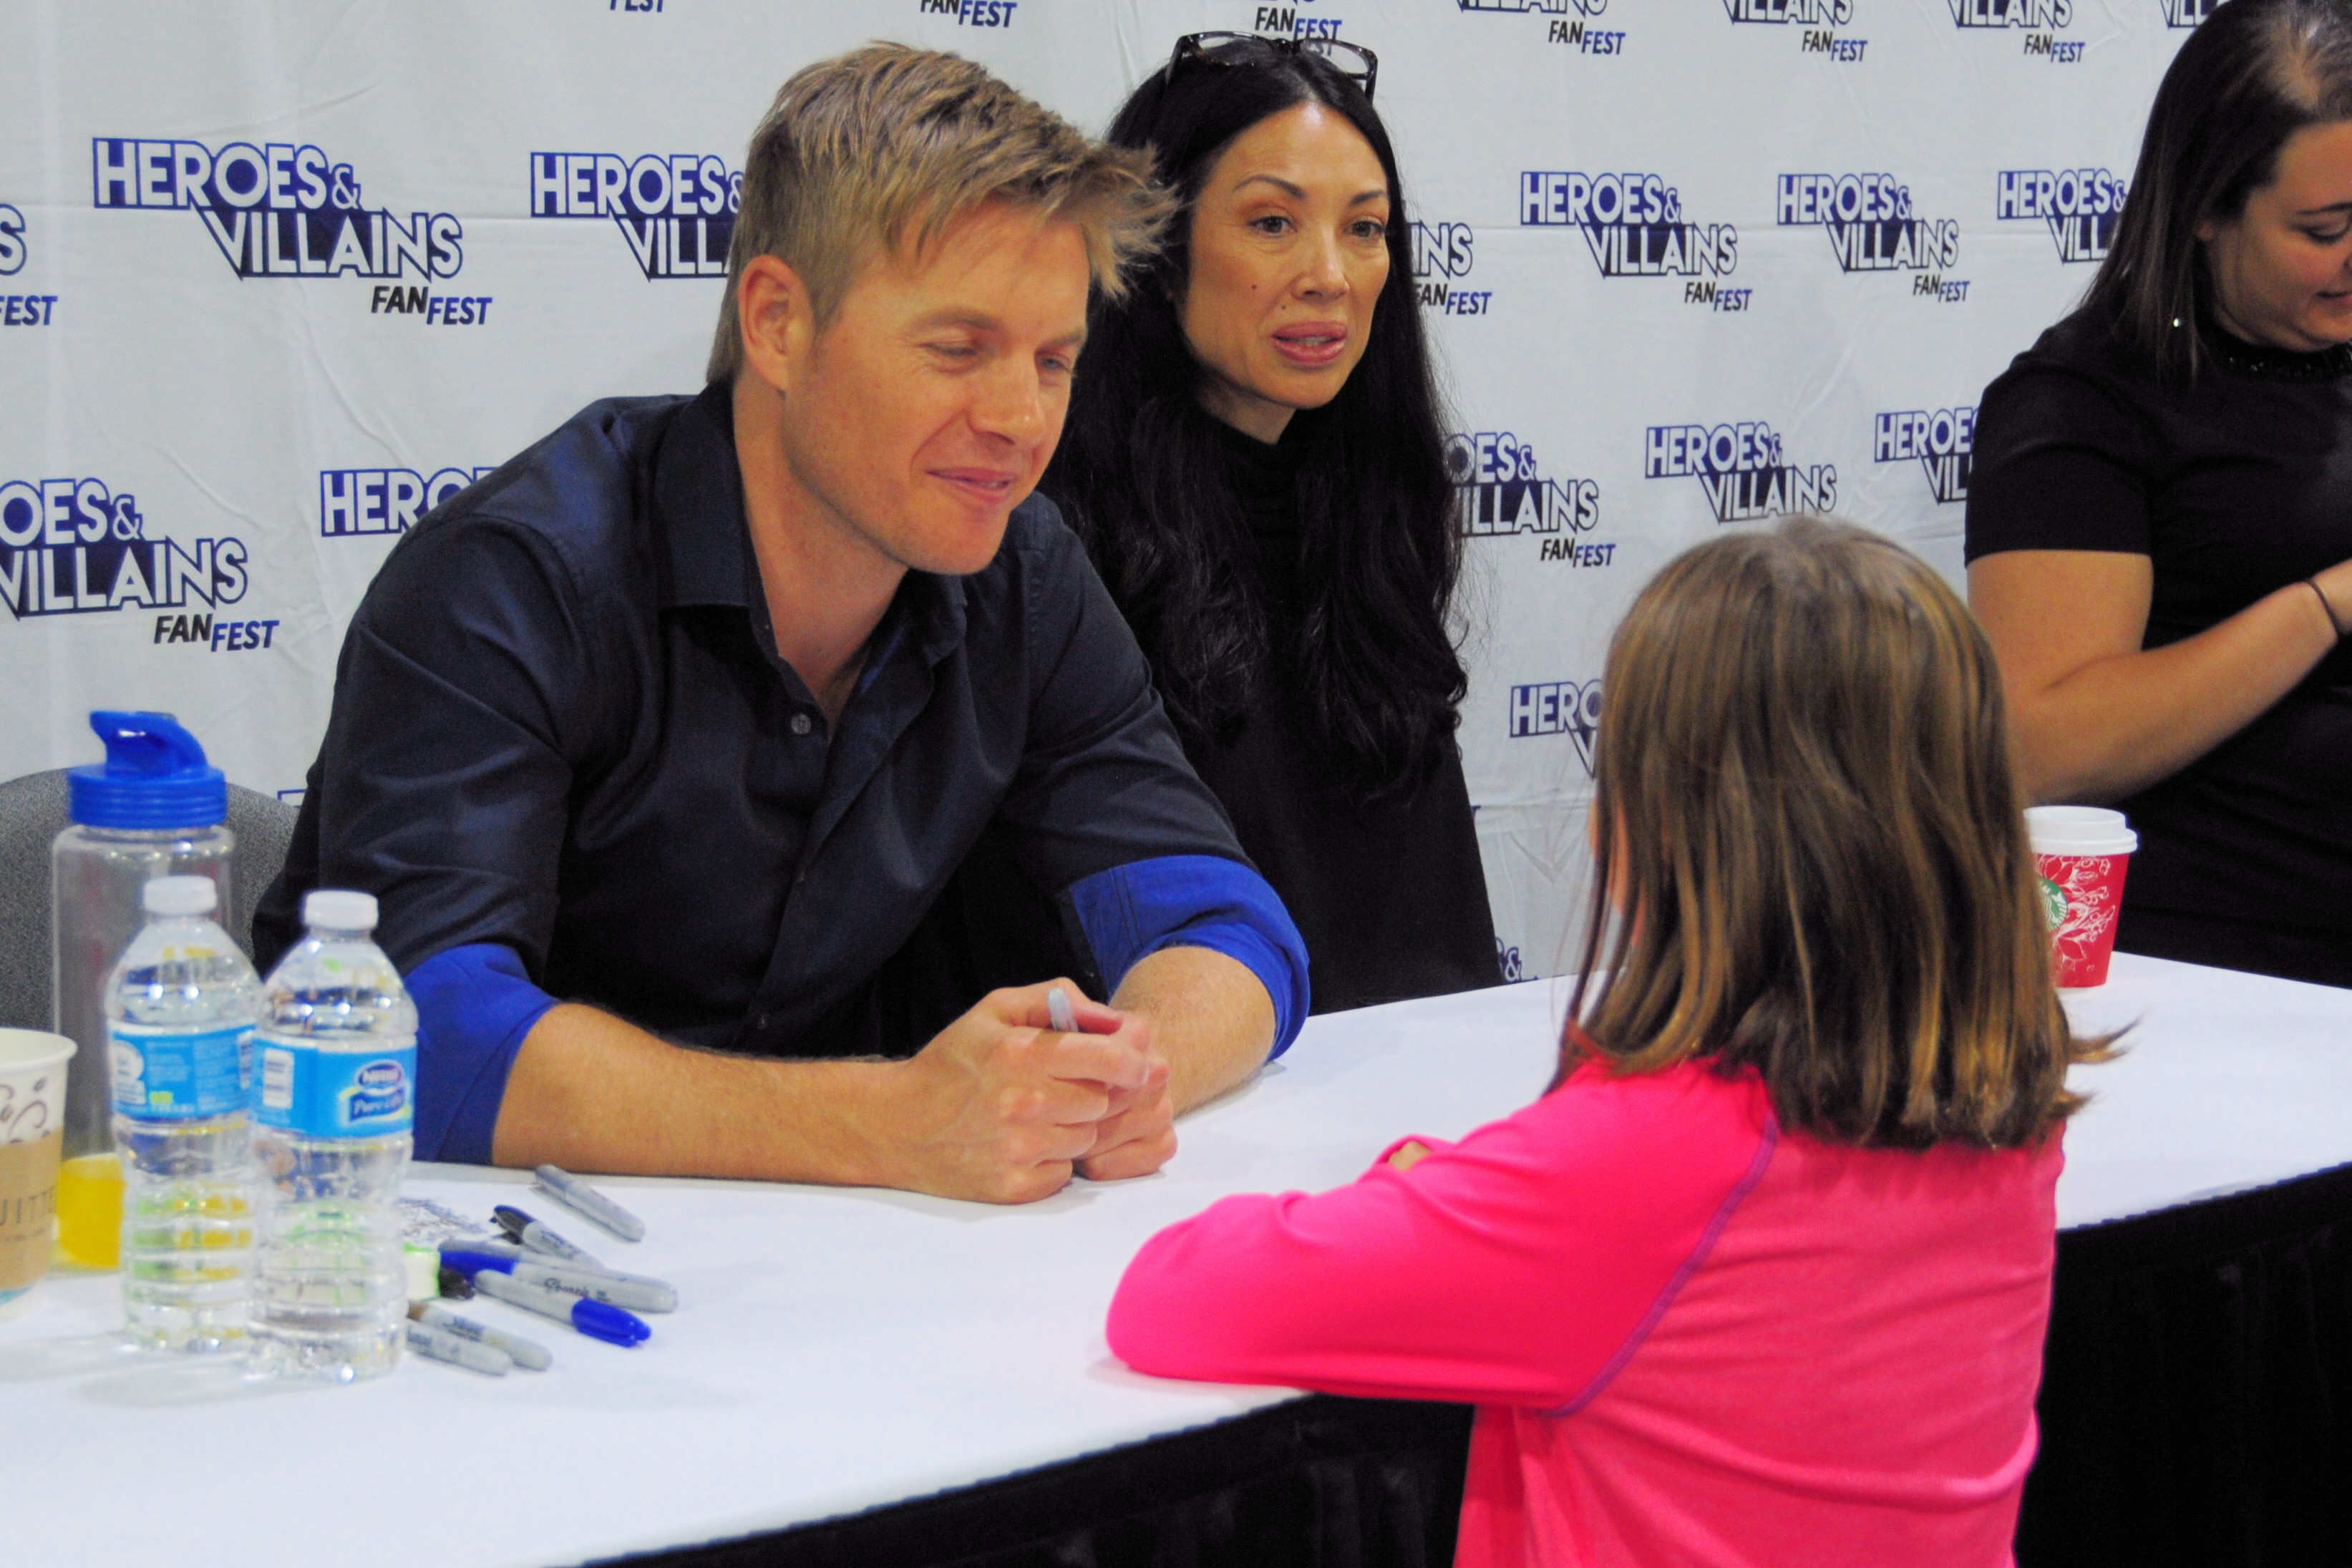 Rick Cosnett Heroes and Villains Fan Fest HVFF The Vampire Diaries The Flash Quantico